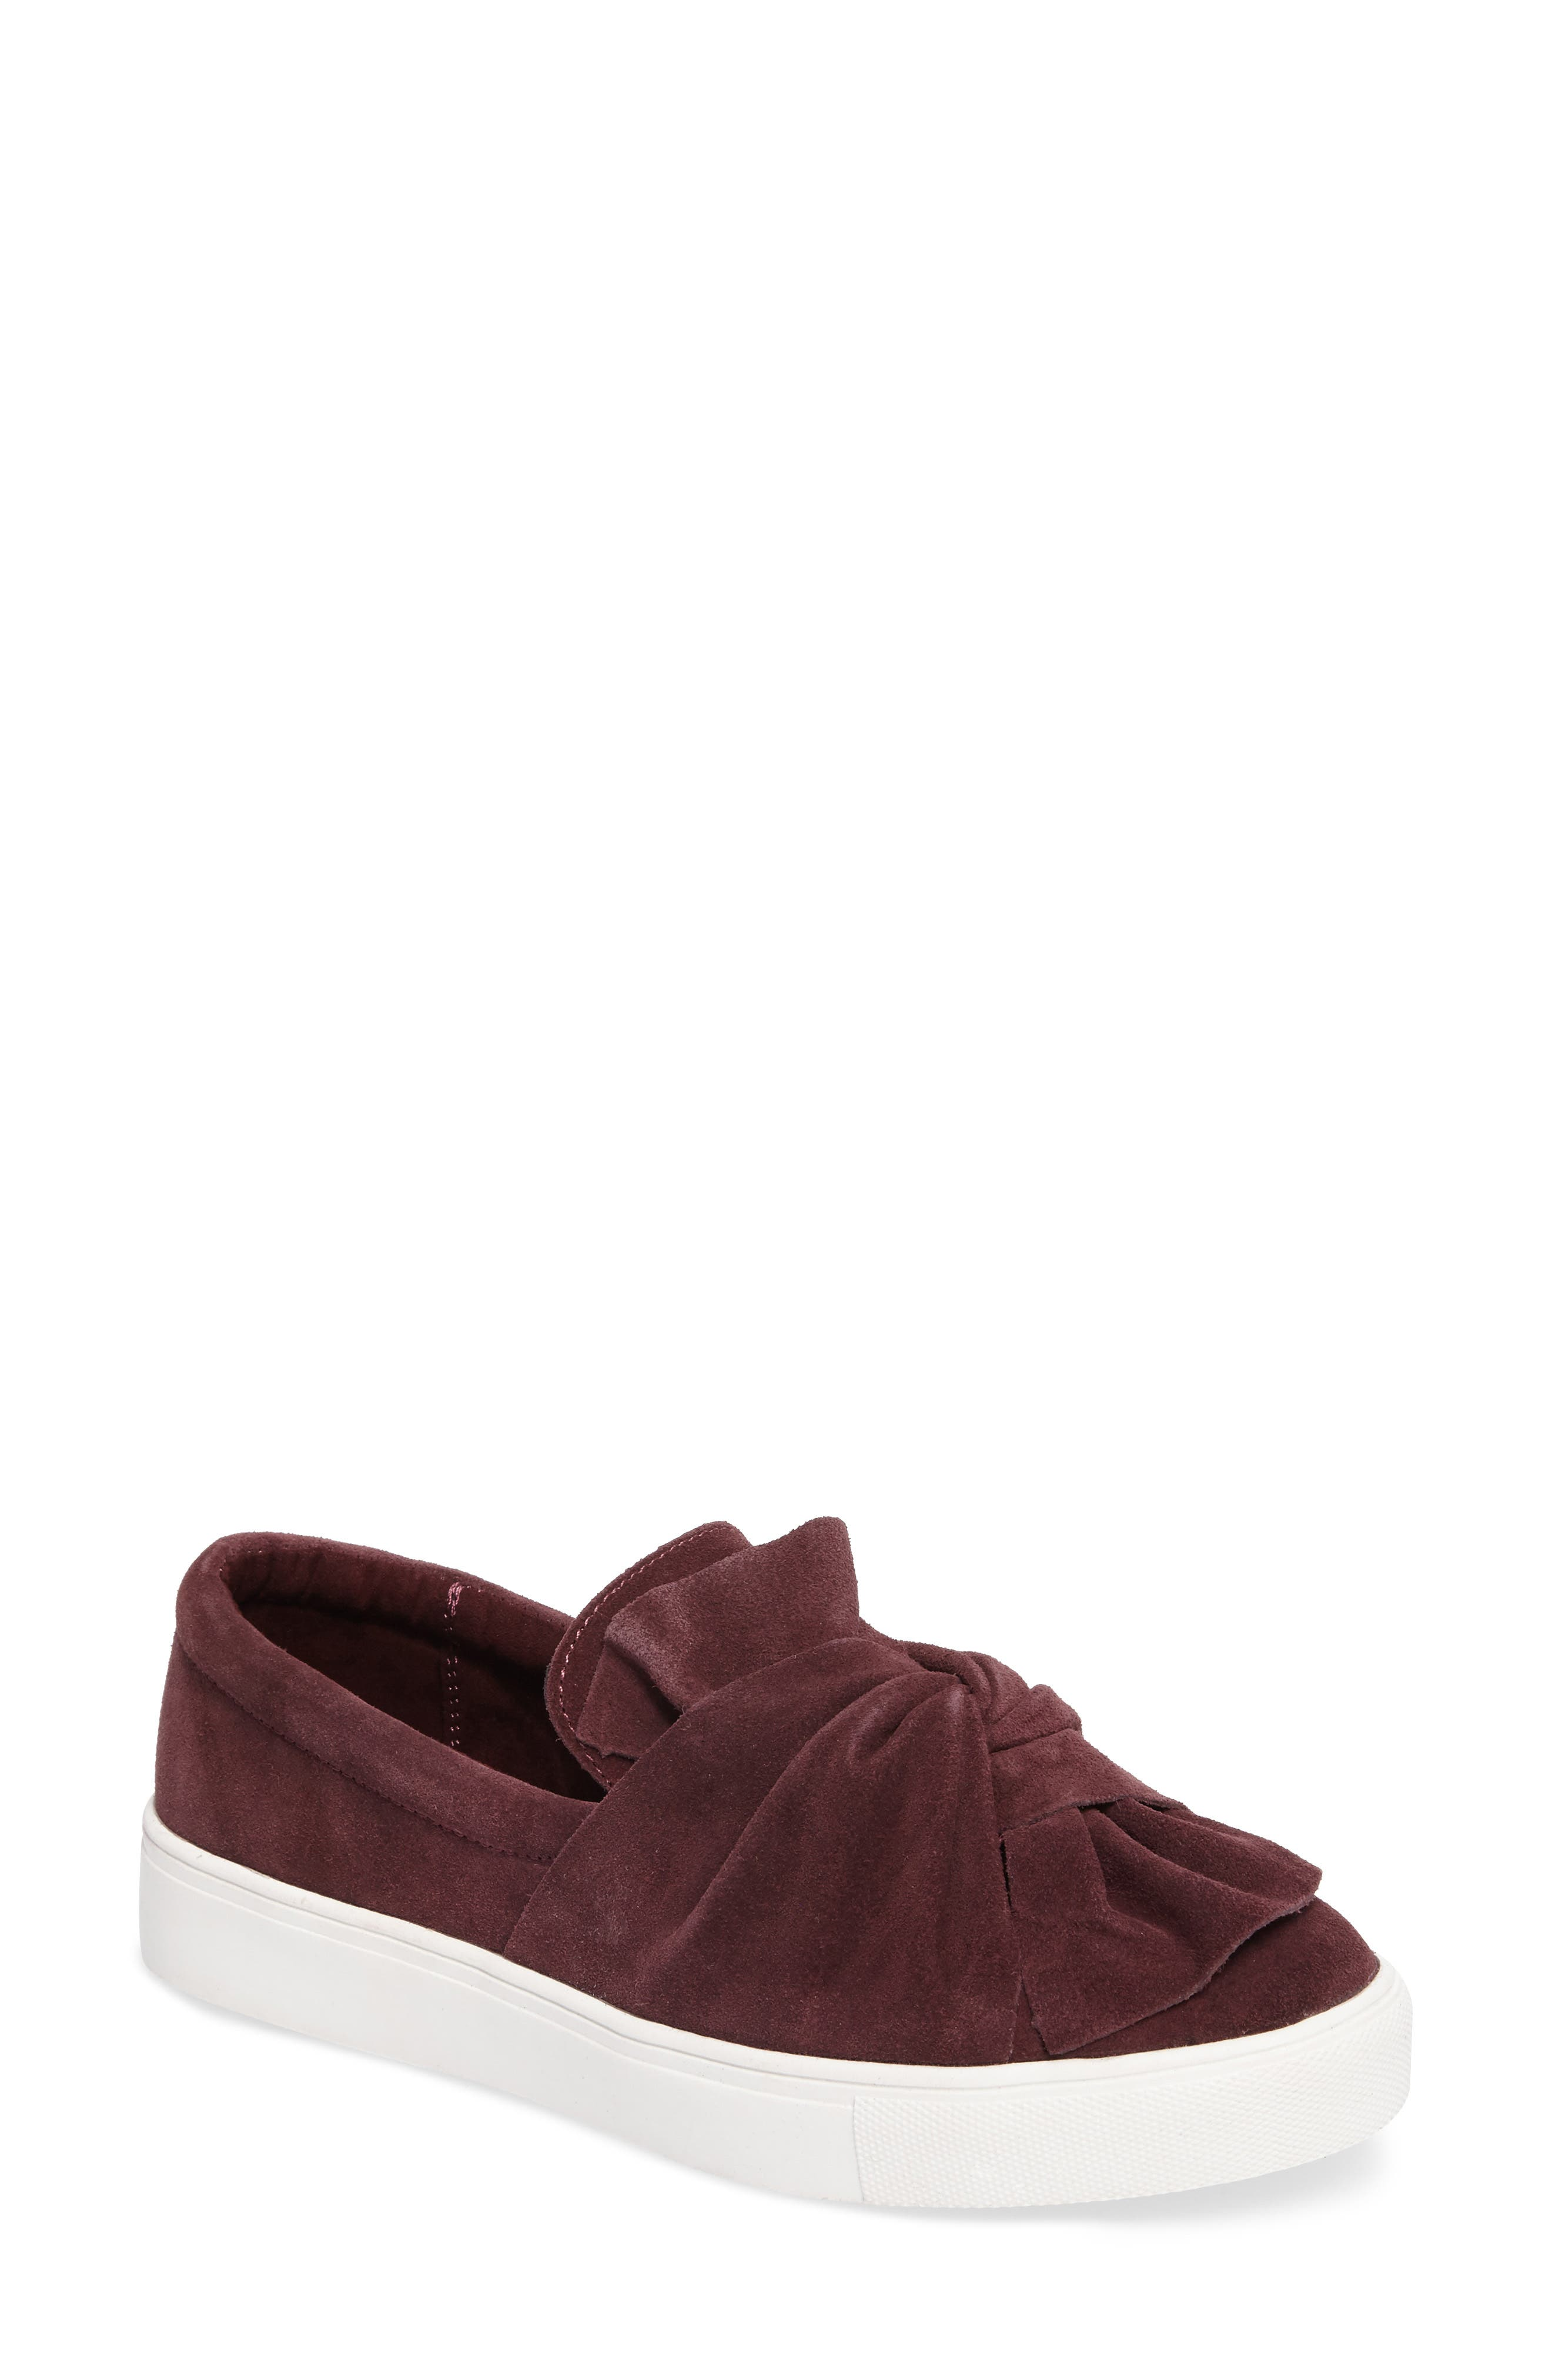 Main Image - MIA Zahara Slip-On Sneaker (Women)